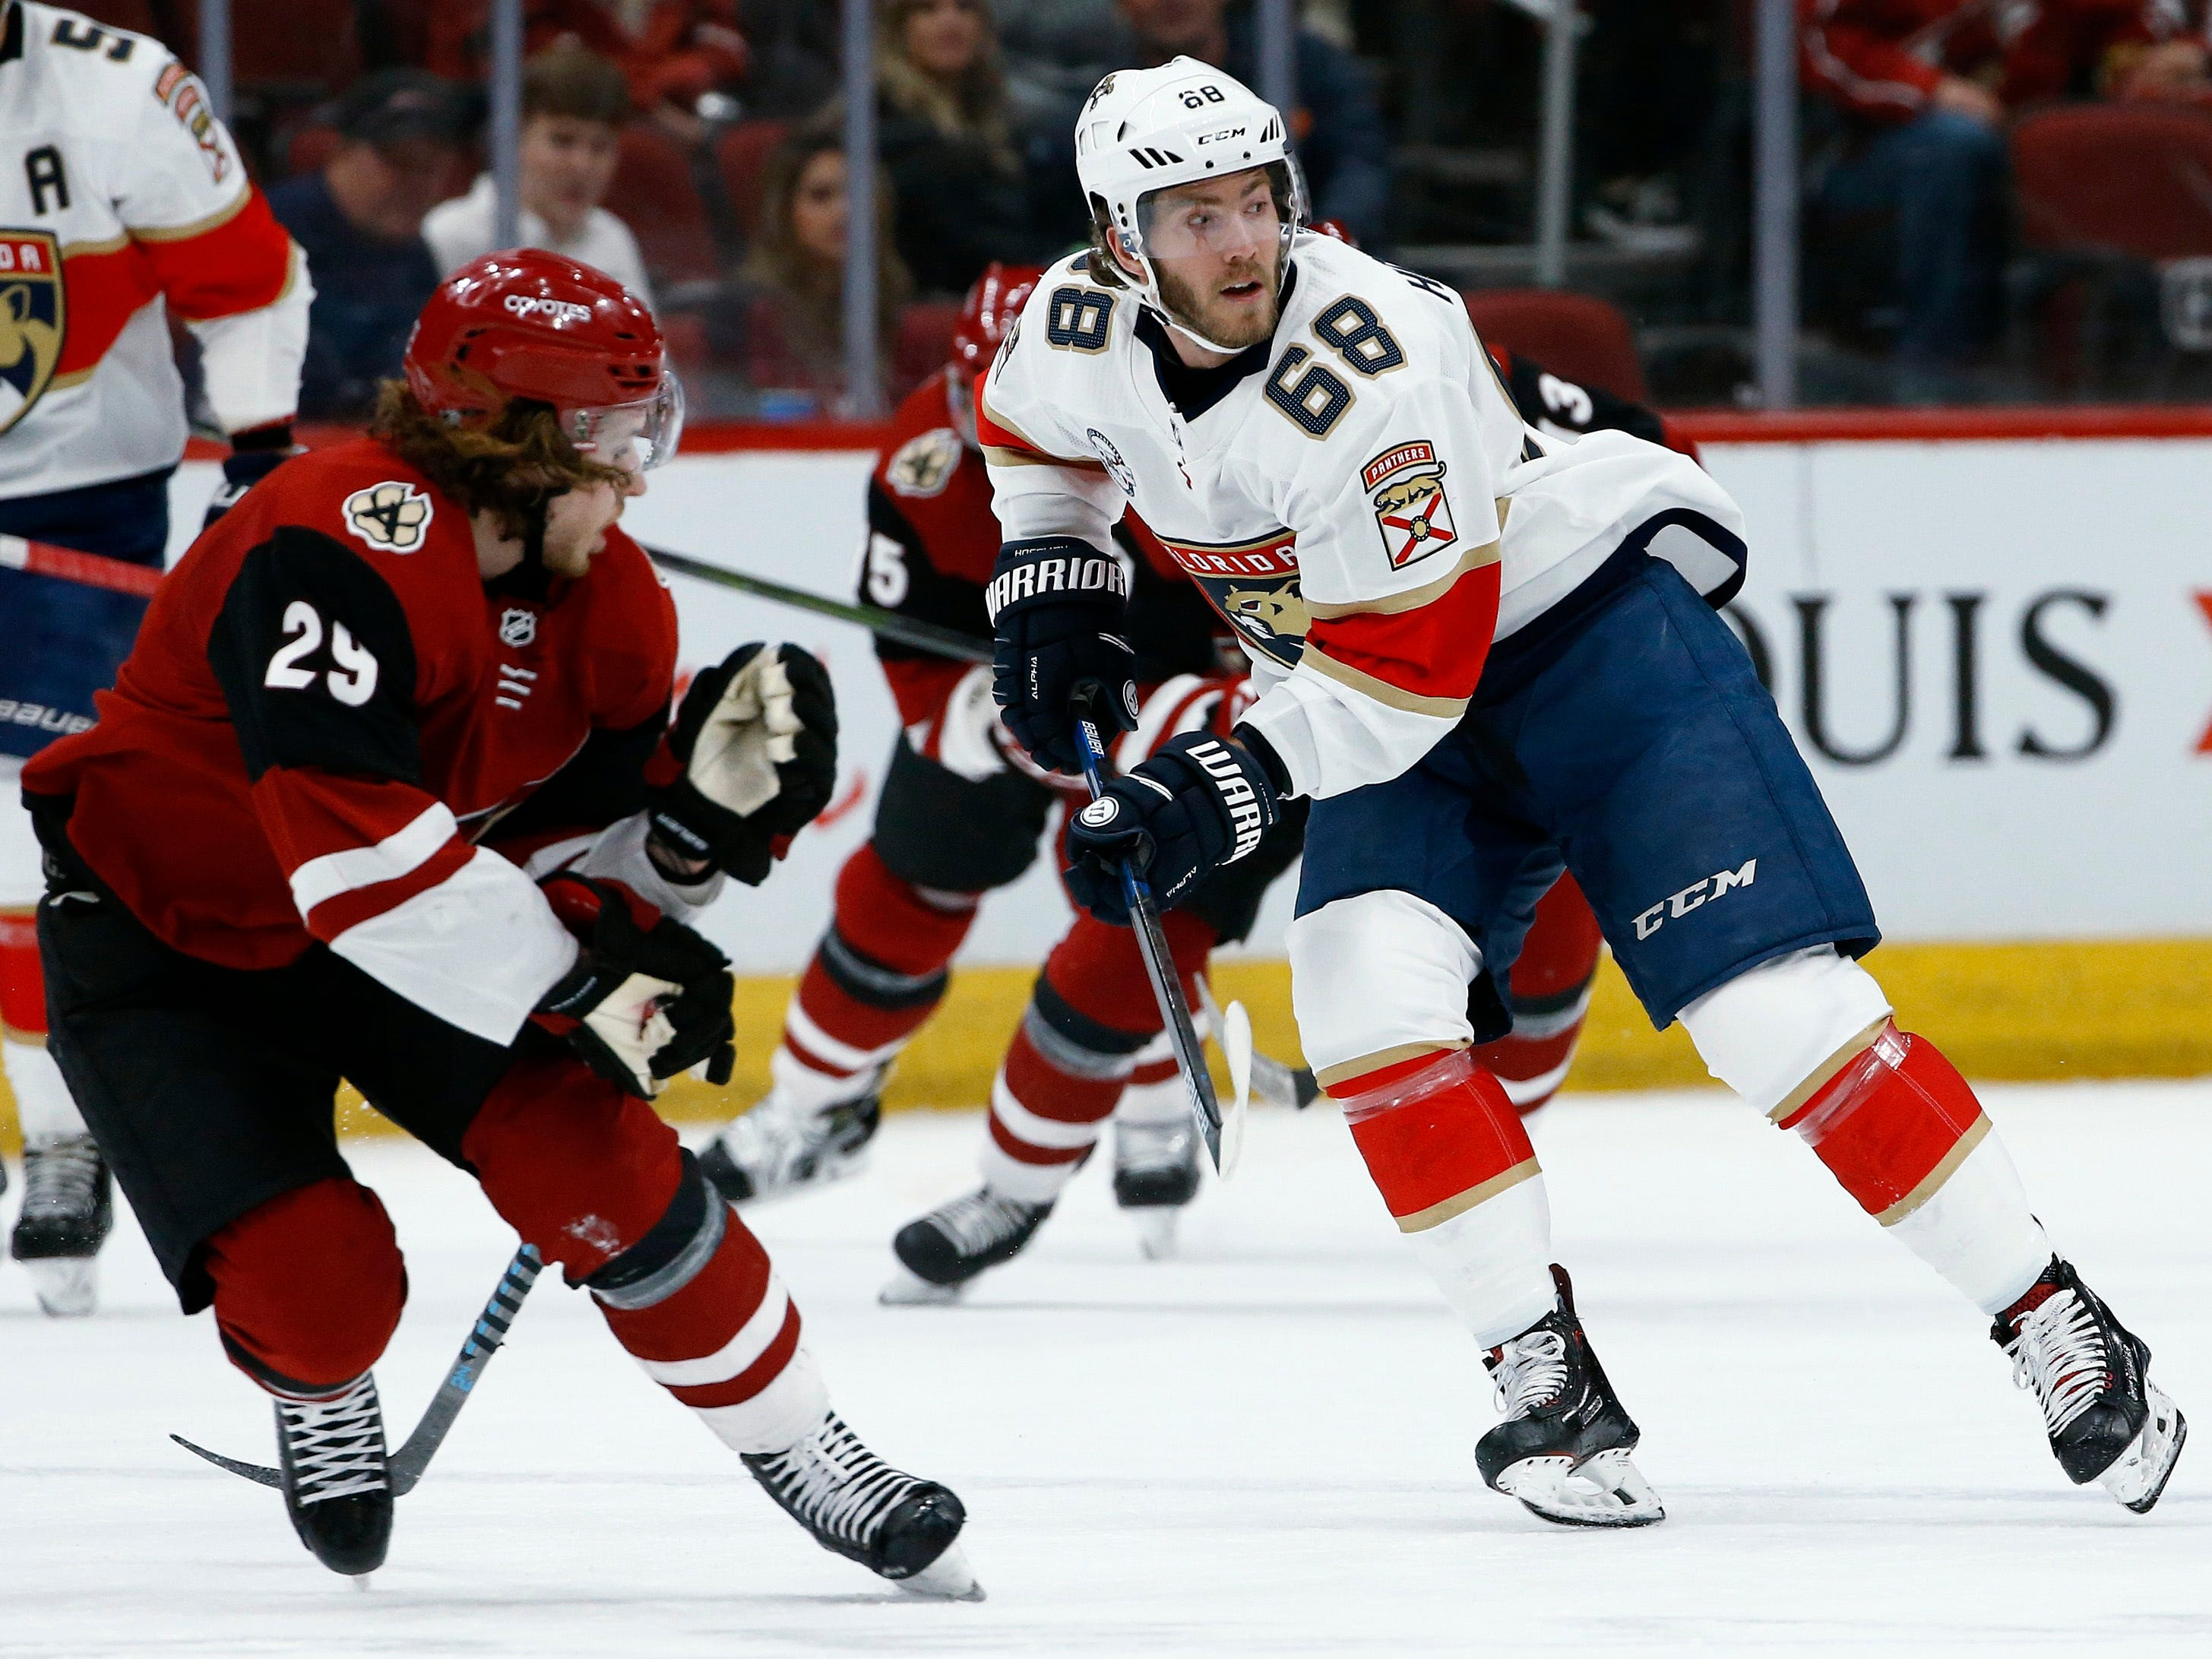 Florida Panthers left wing Mike Hoffman (68) passes the puck in front of Arizona Coyotes right wing Mario Kempe (29) during the first period of an NHL hockey game Tuesday, Feb. 26, 2019, in Glendale, Ariz.